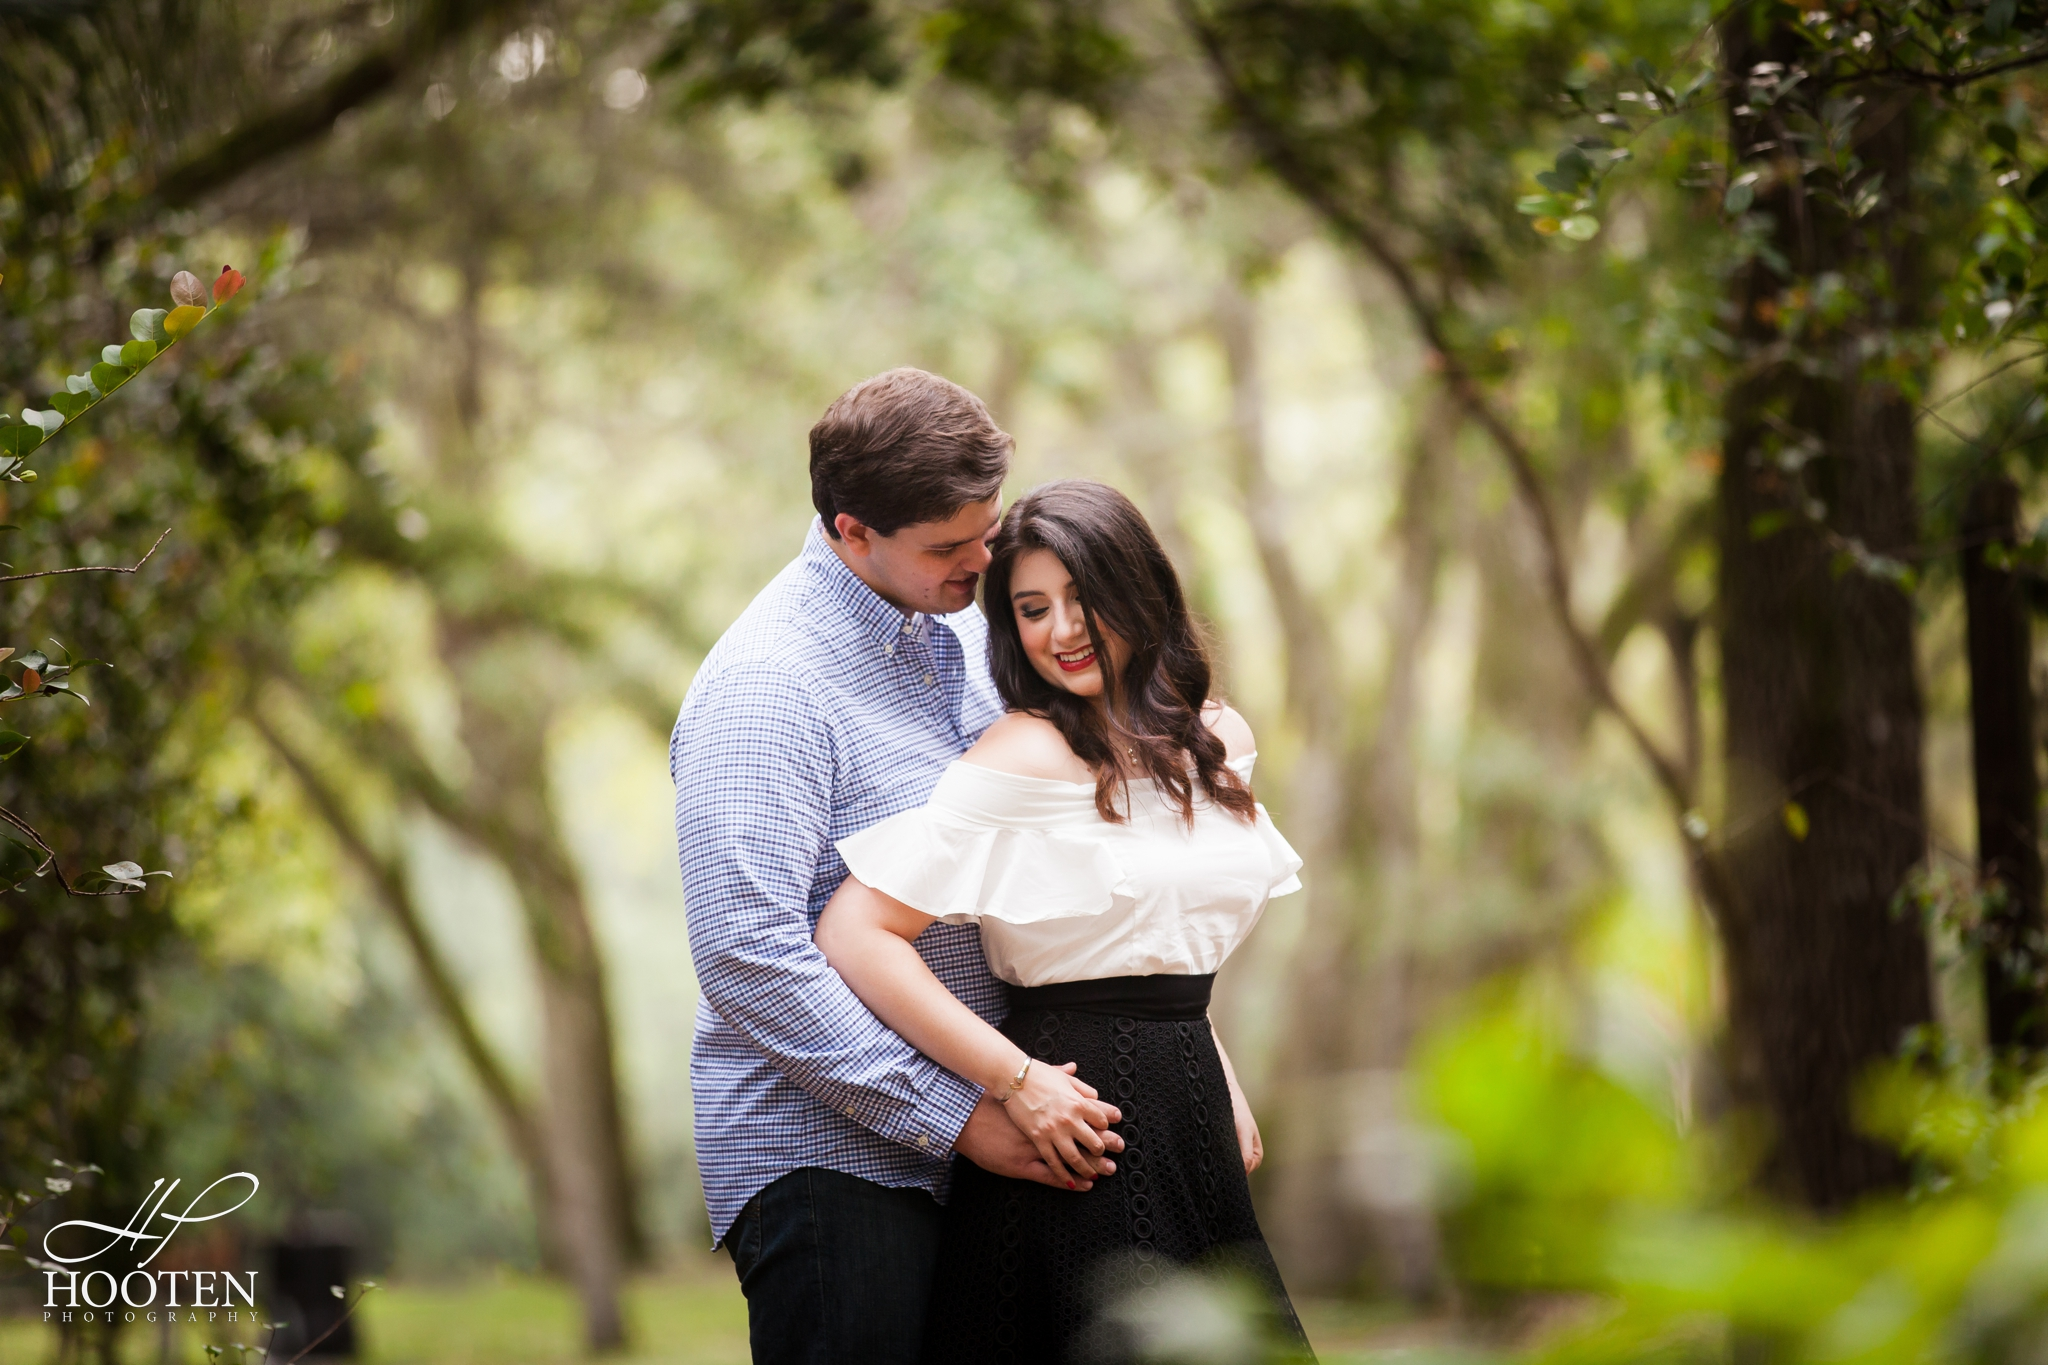 Tree-Tops-Park-Engagement-Session-Hooten Photography-7761.jpg